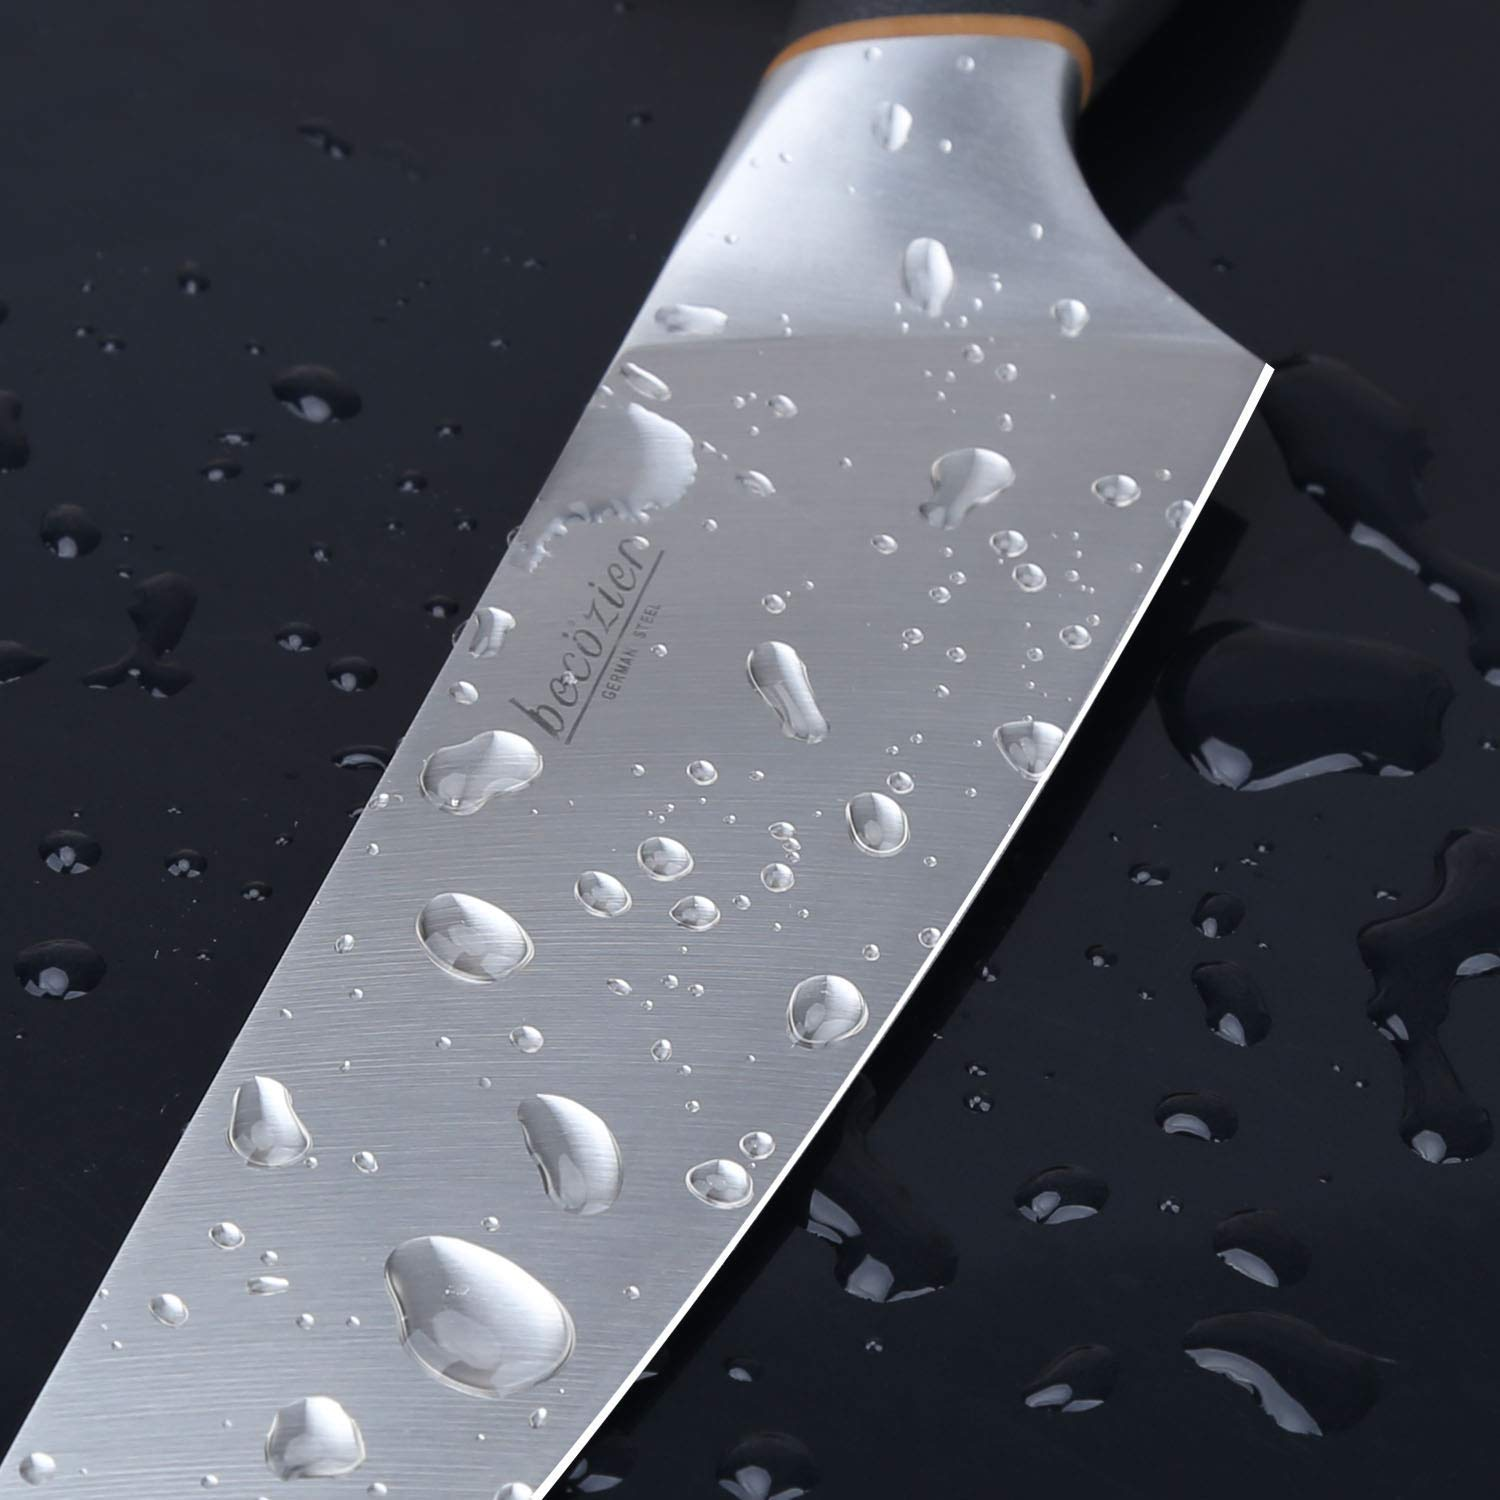 Becozier chef knife,8 inch professional kitchen knife,German High Carbon steel stainless steel with G10 handle sharp Edge,Ergonomic Grip by Becozier (Image #6)